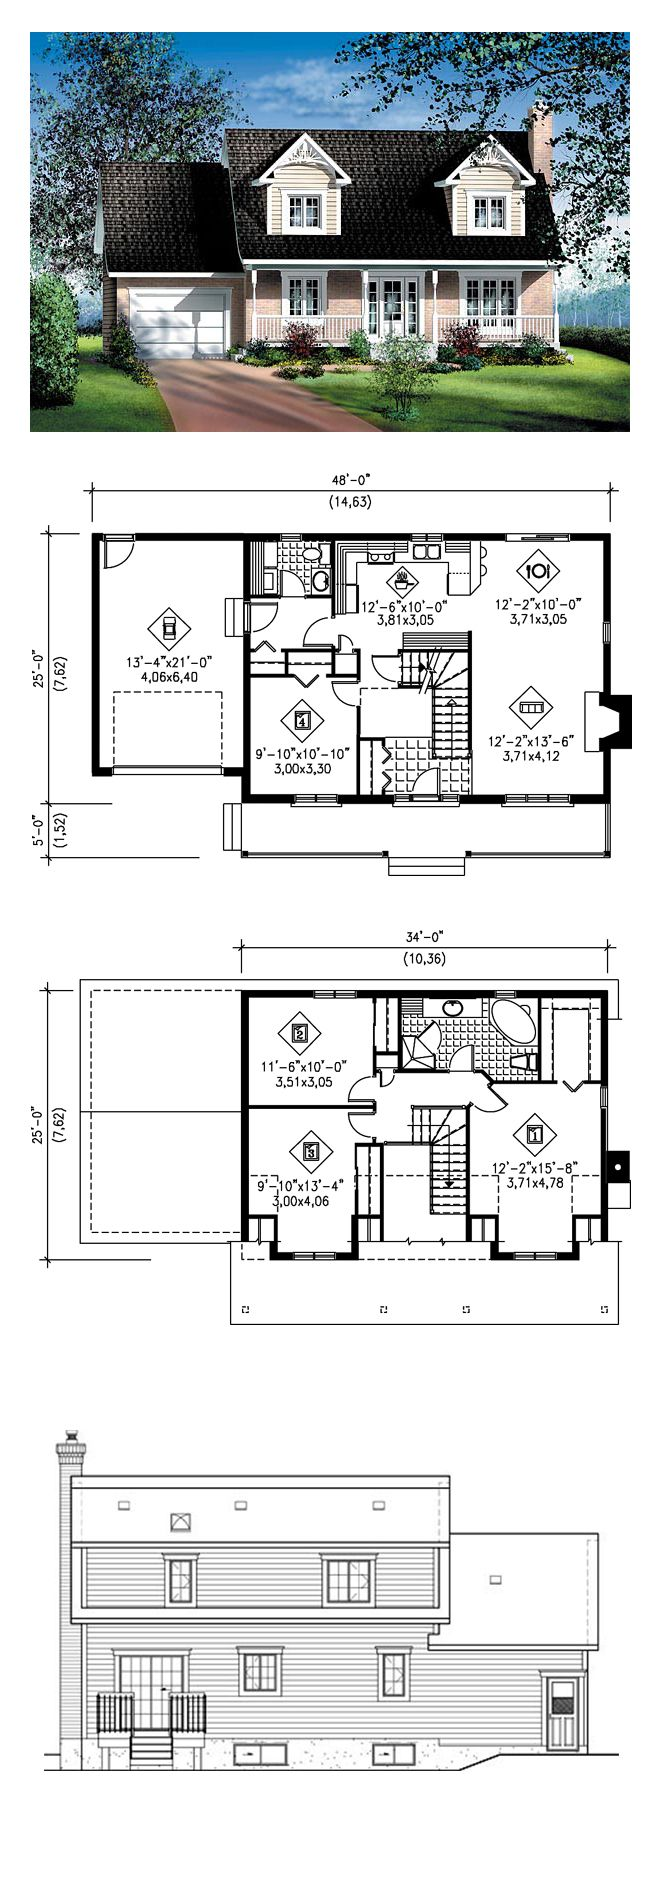 Cape Cod House Plan 49687 Total Living Area 1564 Sq Ft